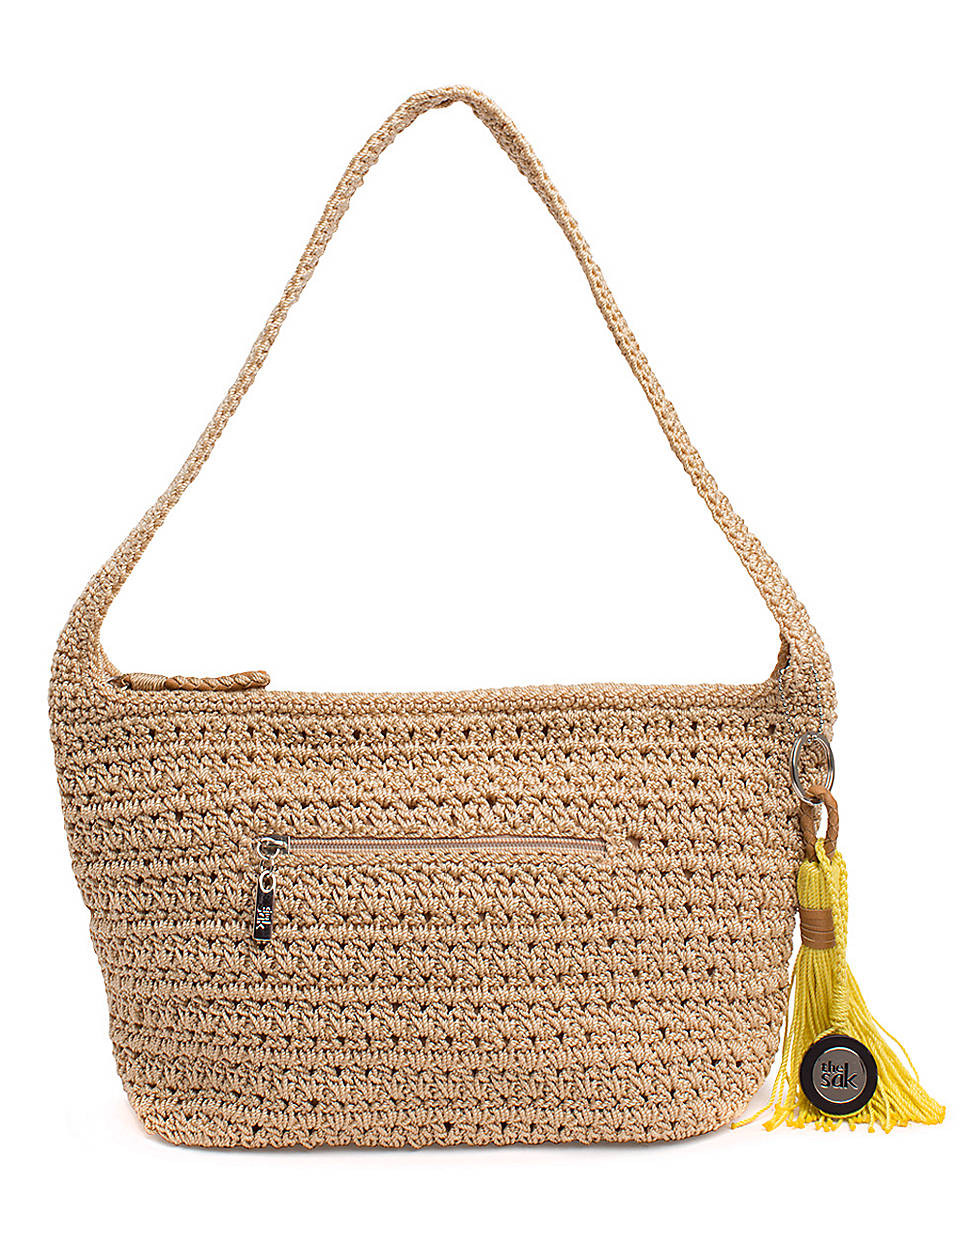 Sak Crochet Bags Inspirational the Sak Casual Classics Crochet Hobo Bag In Beige Bamboo Of Amazing 41 Models Sak Crochet Bags